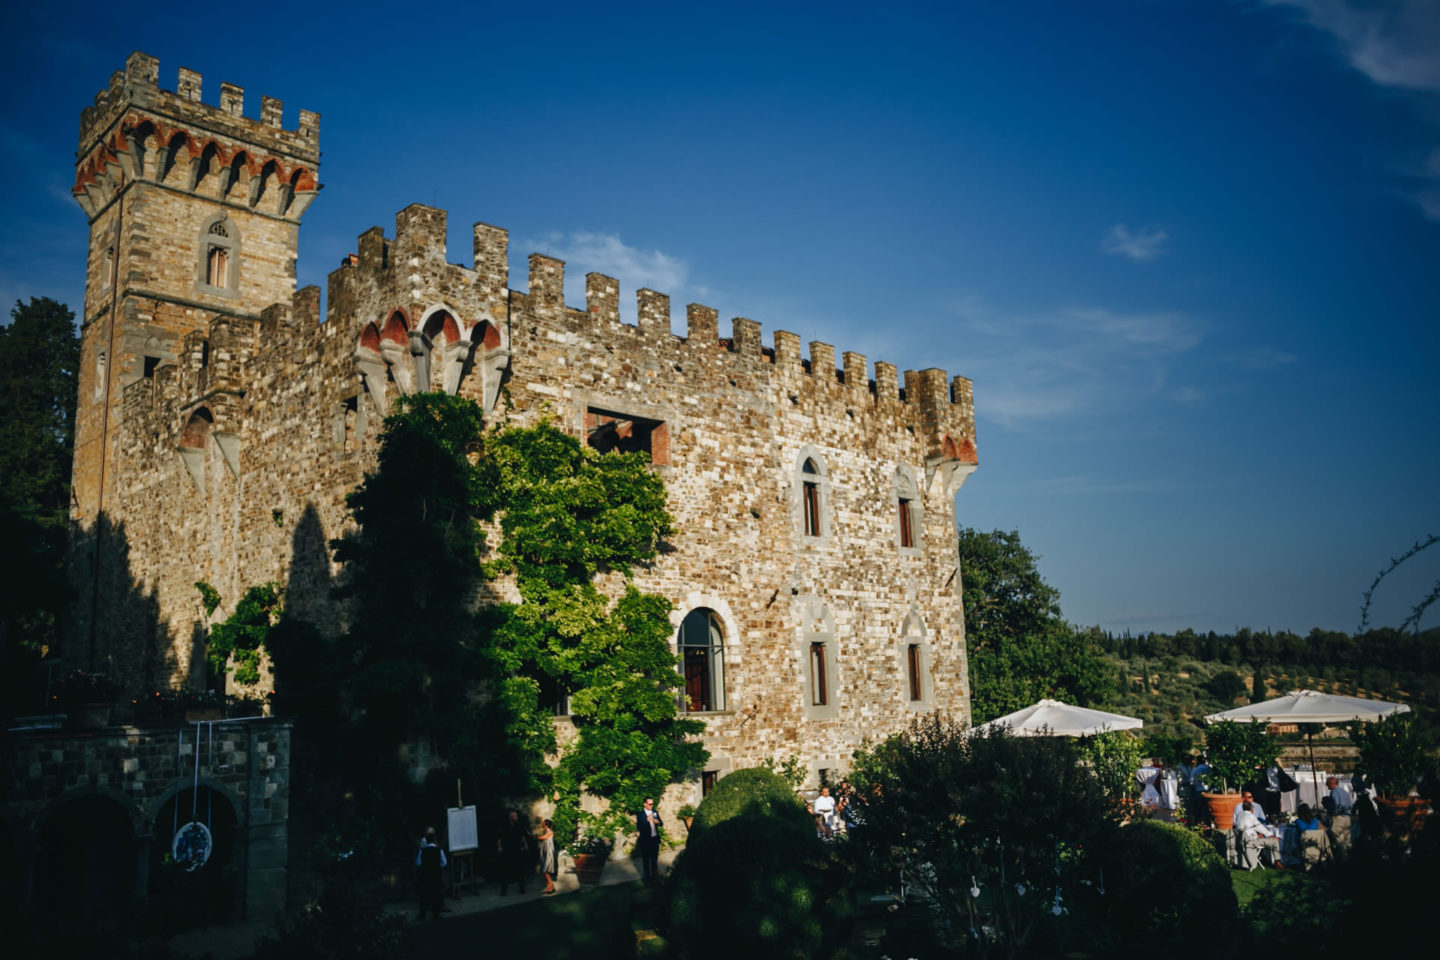 Castle :: Crazy wedding at Vincigliata Castle and Villa San Michele :: Luxury wedding photography - 37 :: Castle